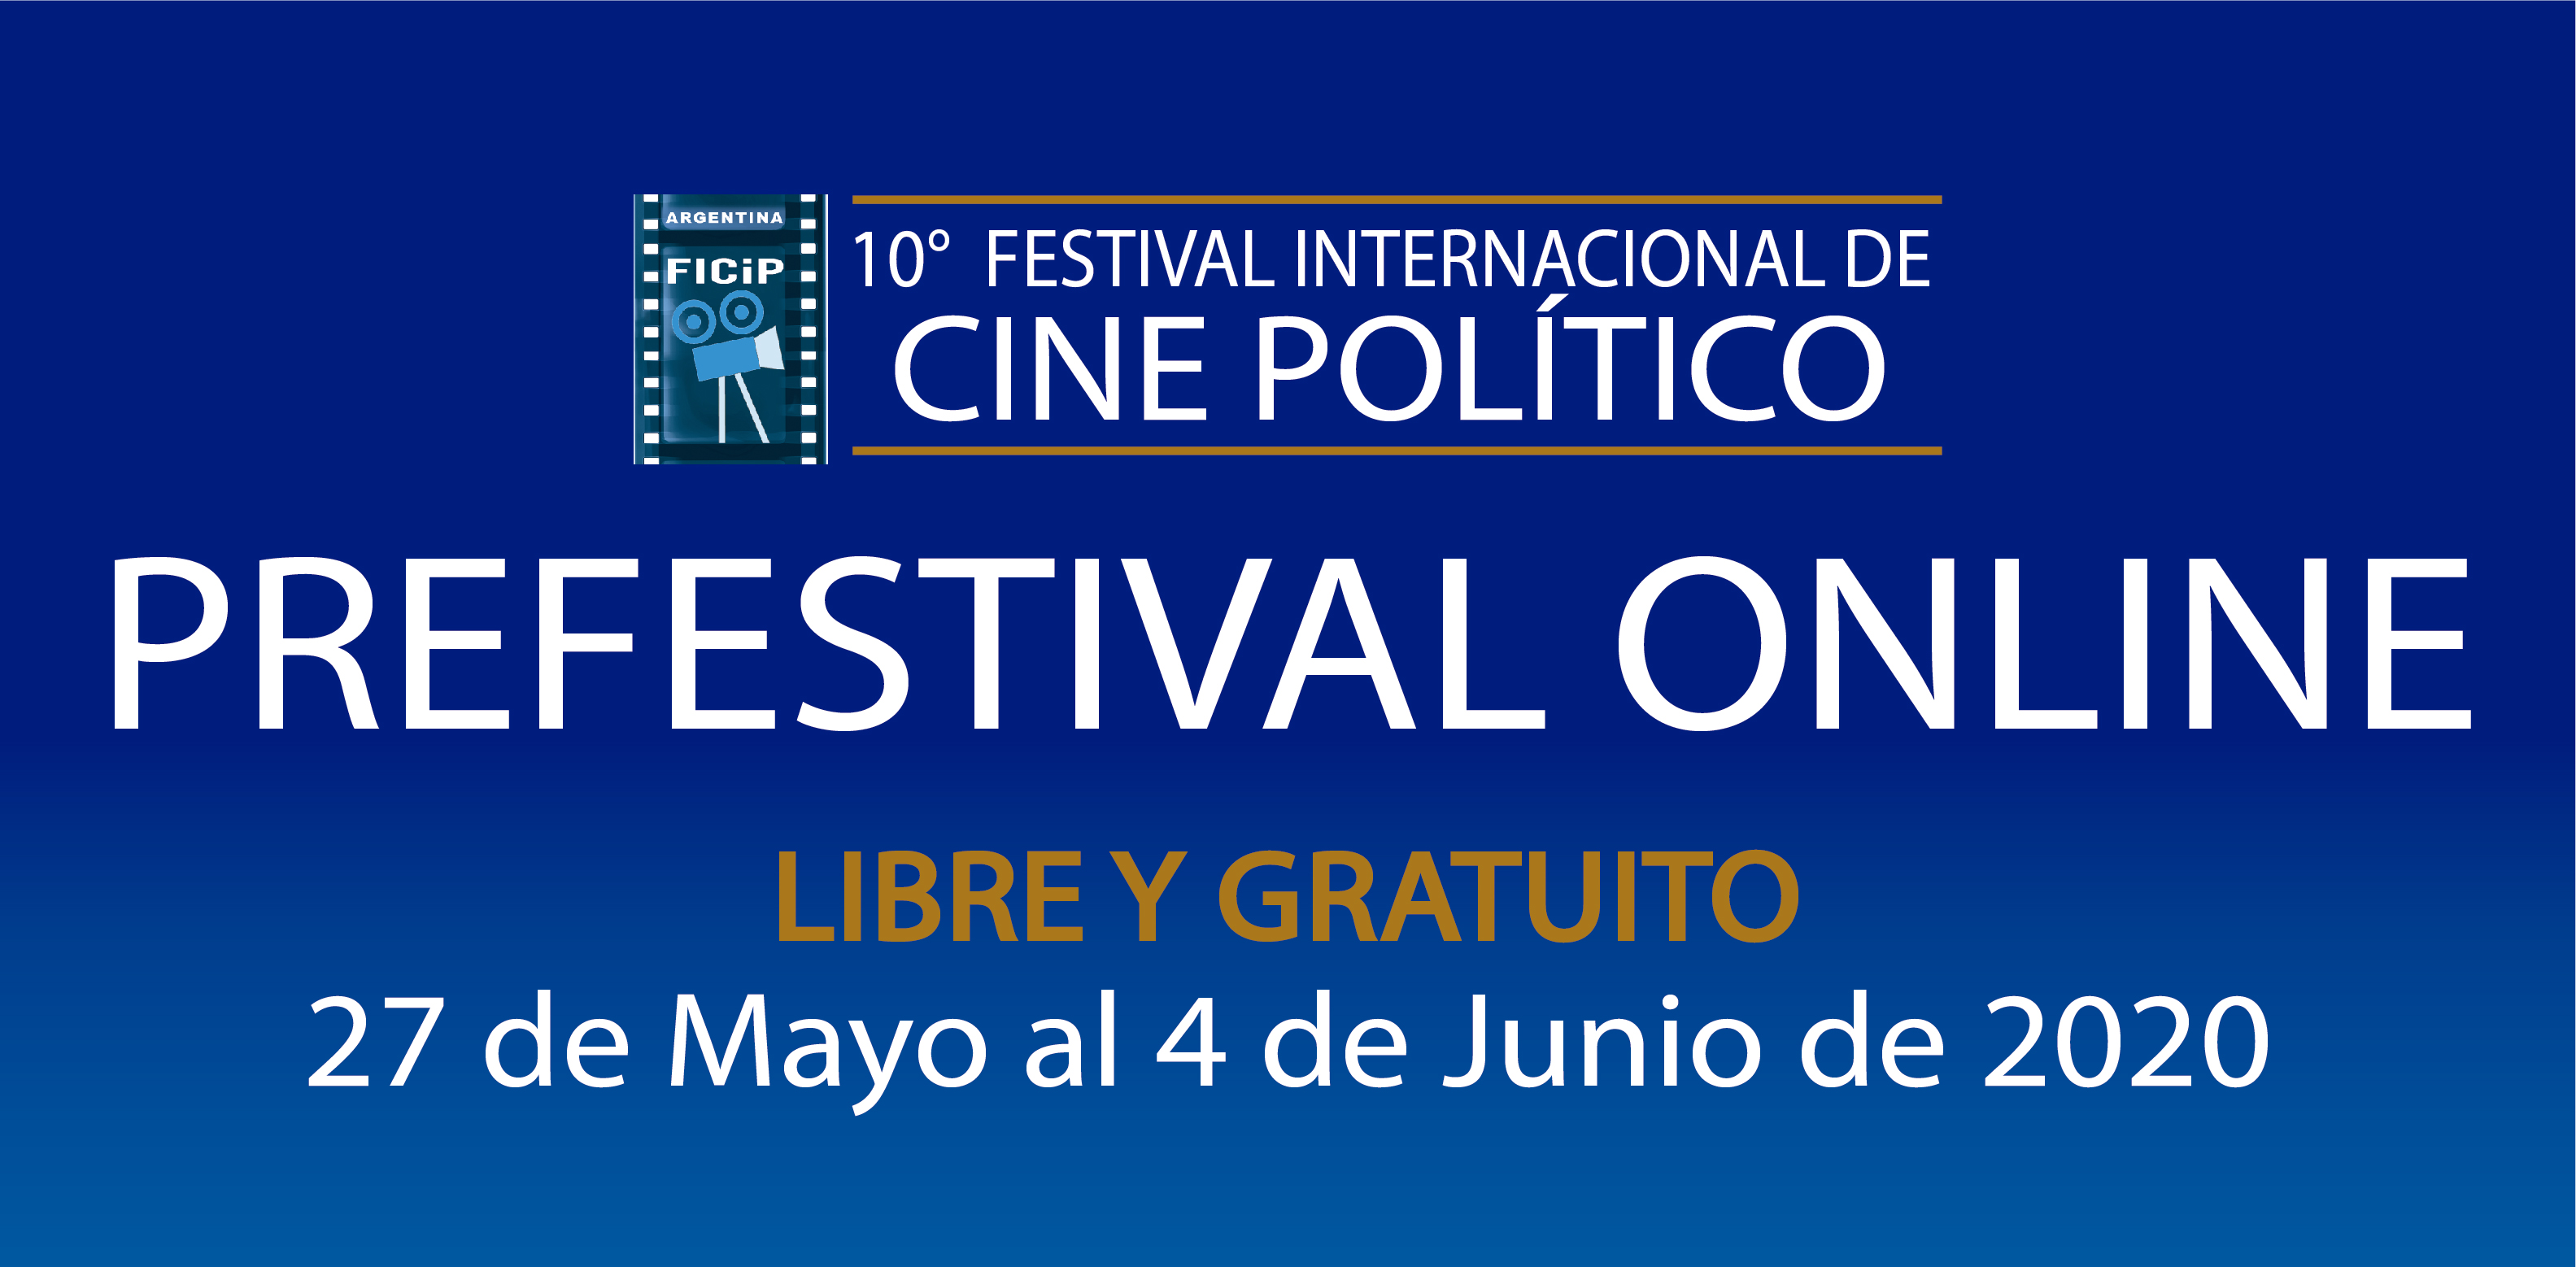 10th edition of the International Political Film Festival holds an online Pre-festival